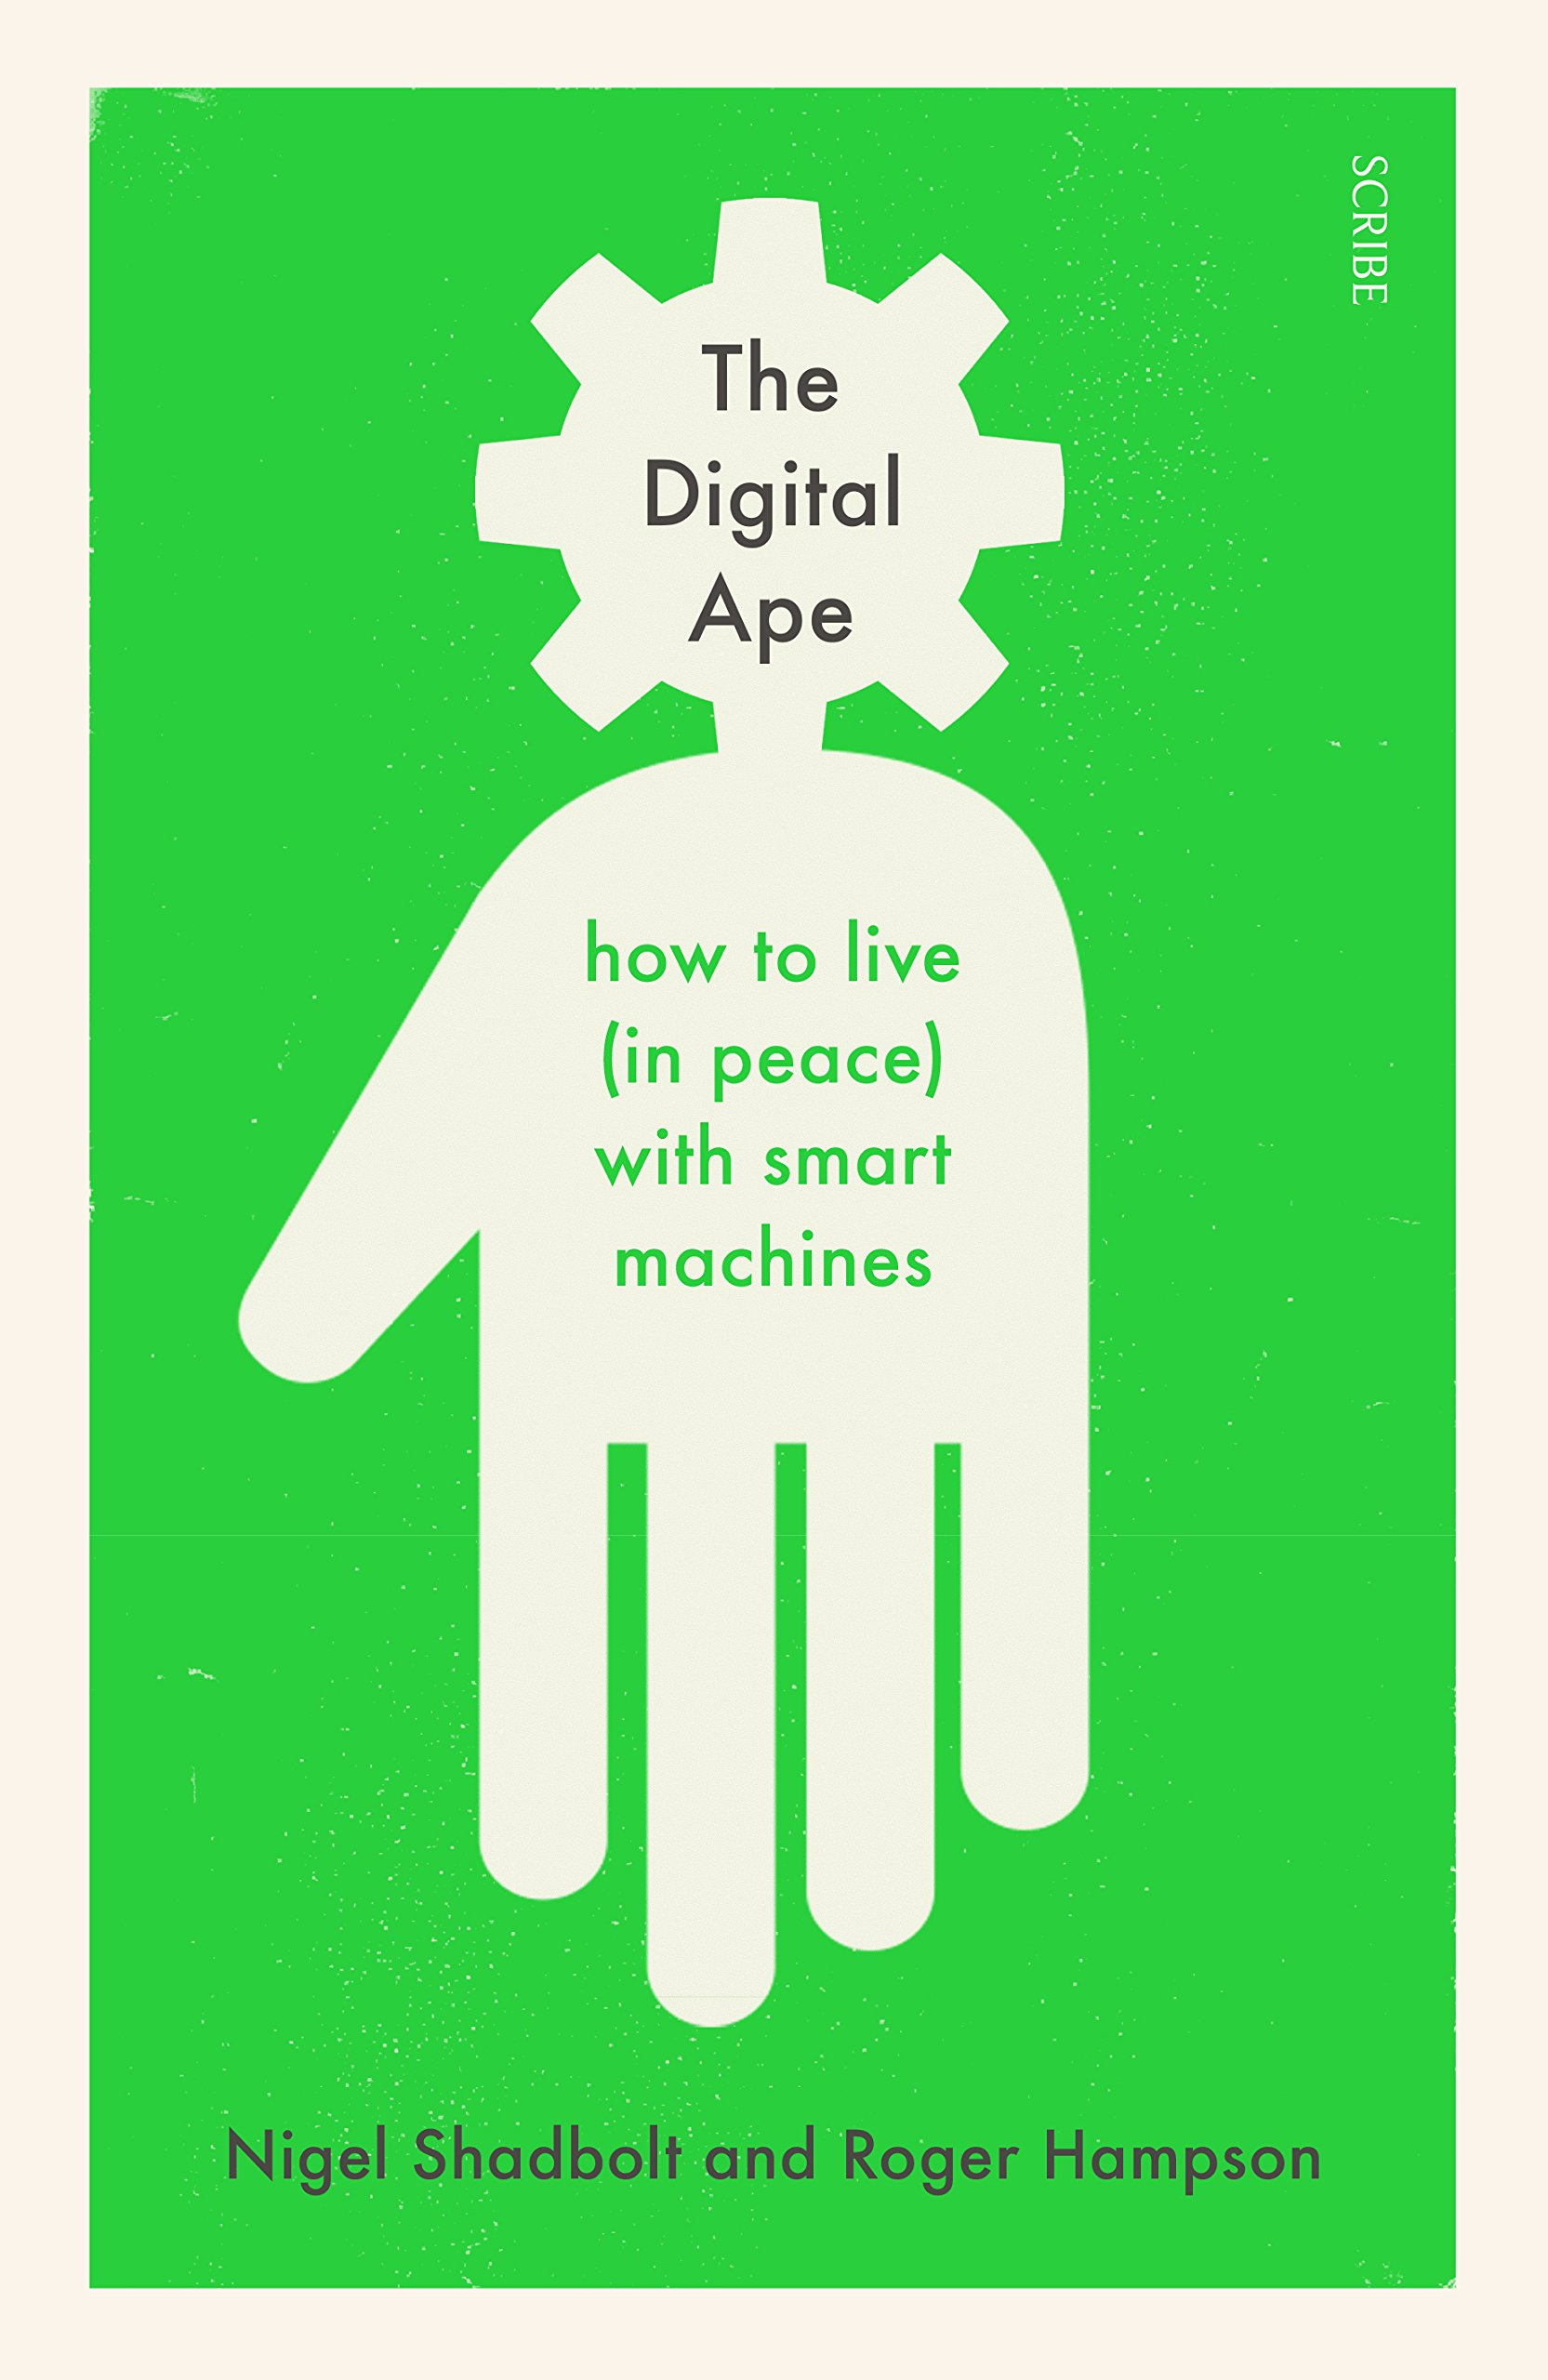 The Digital Ape: how to live (in peace) with smart machines